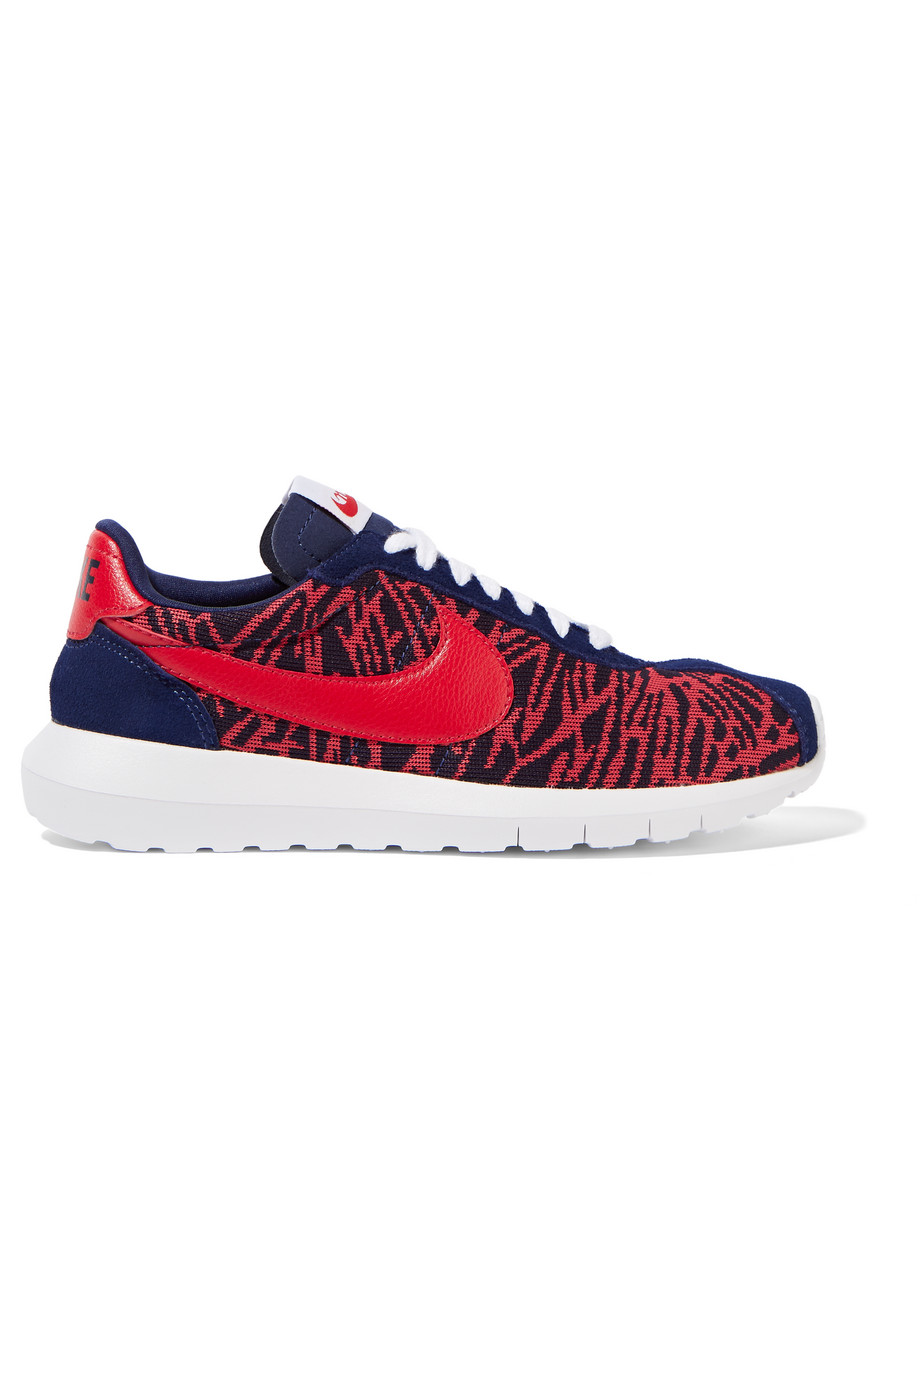 Nike Roshe LD-1000 Jacquard, Suede and Leather Sneakers, Red/Navy, Women's, Size: 9